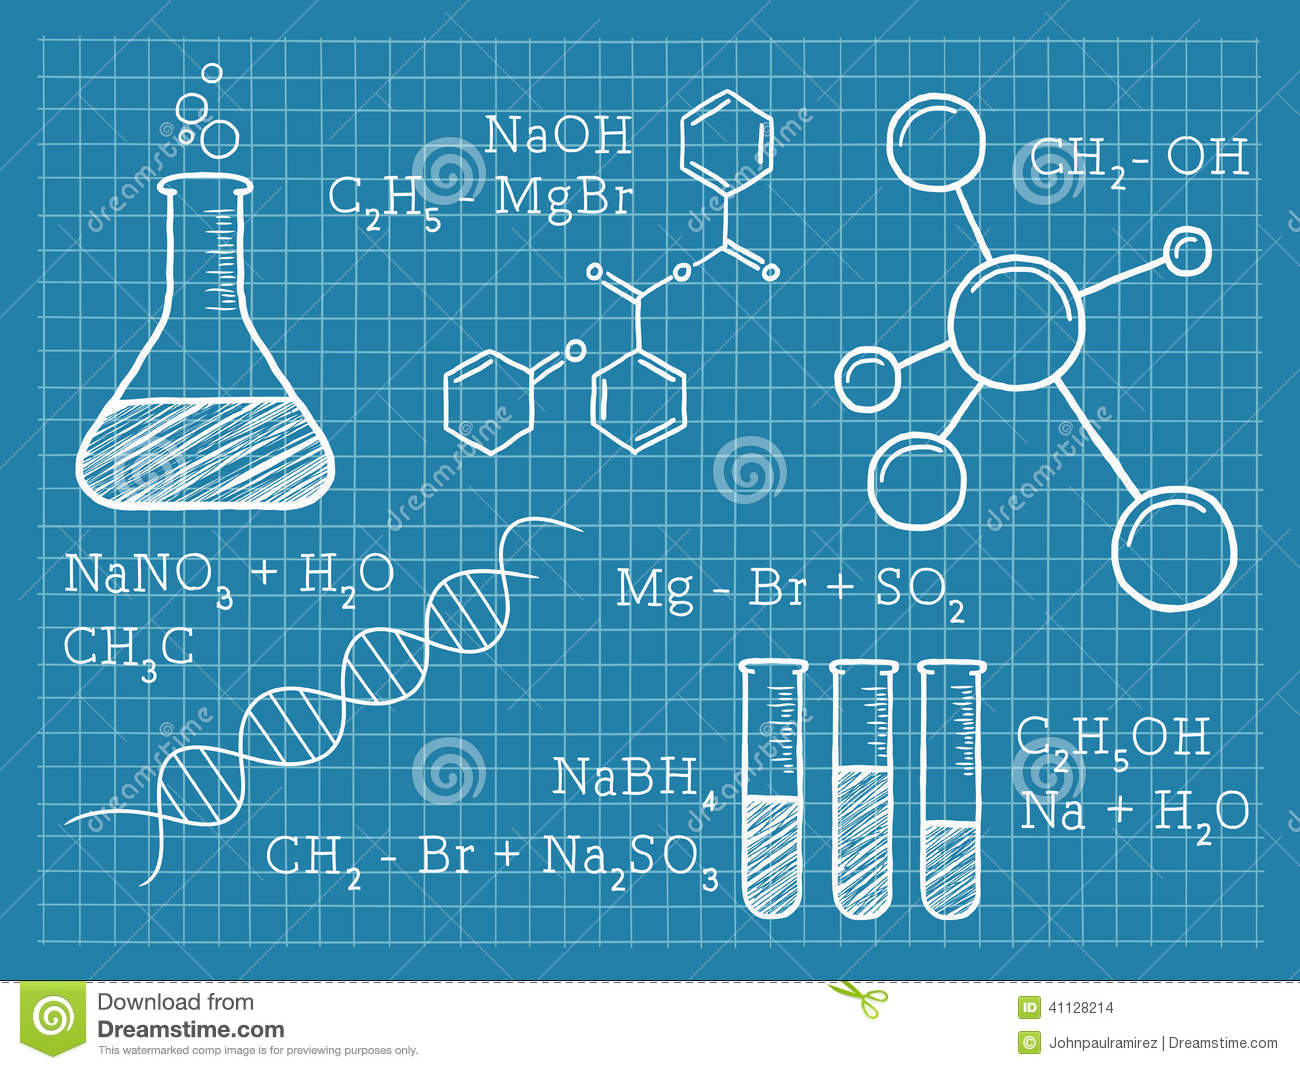 Chemistry stock illustrations 96282 chemistry stock chemistry stock illustrations 96282 chemistry stock illustrations vectors clipart dreamstime malvernweather